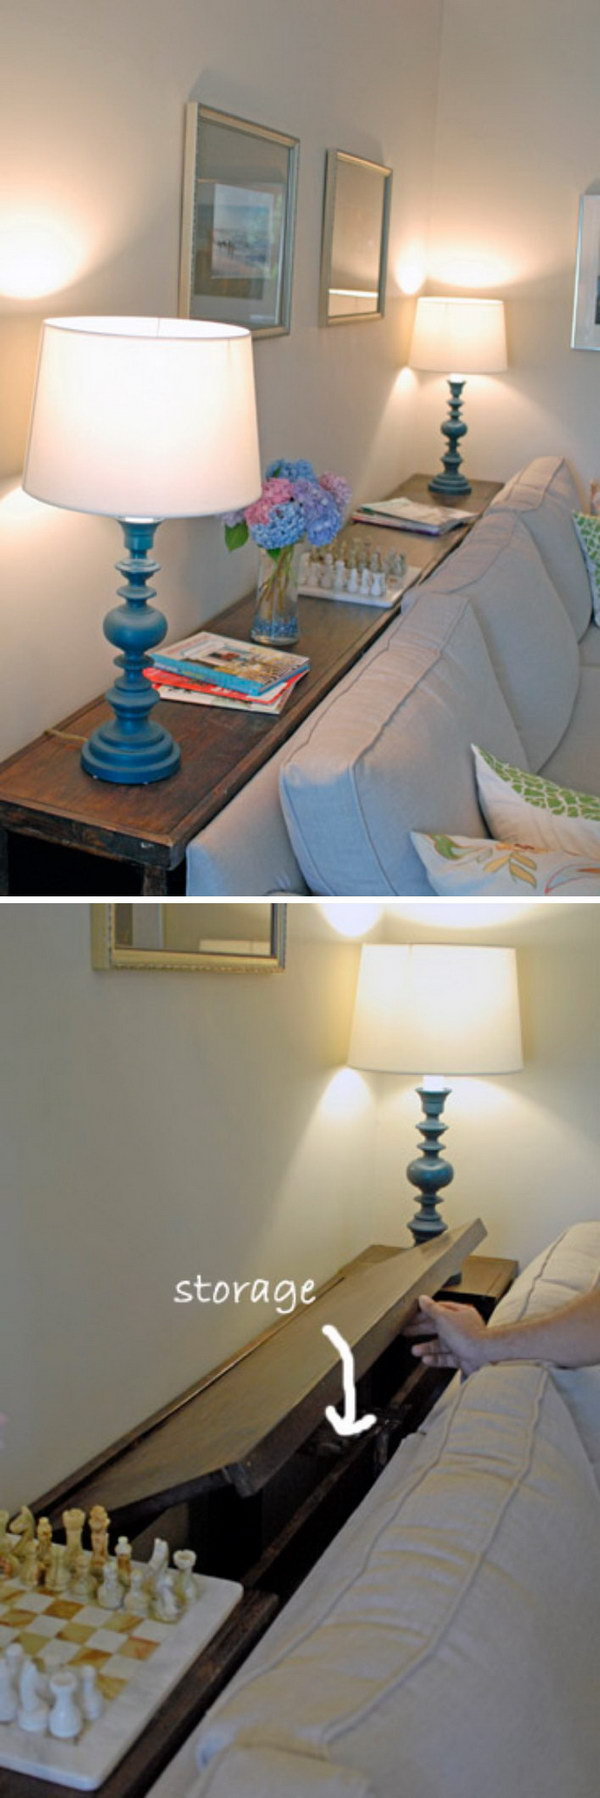 Place a Little Console Table with Storage Behind Your Couch so You Have More Room.